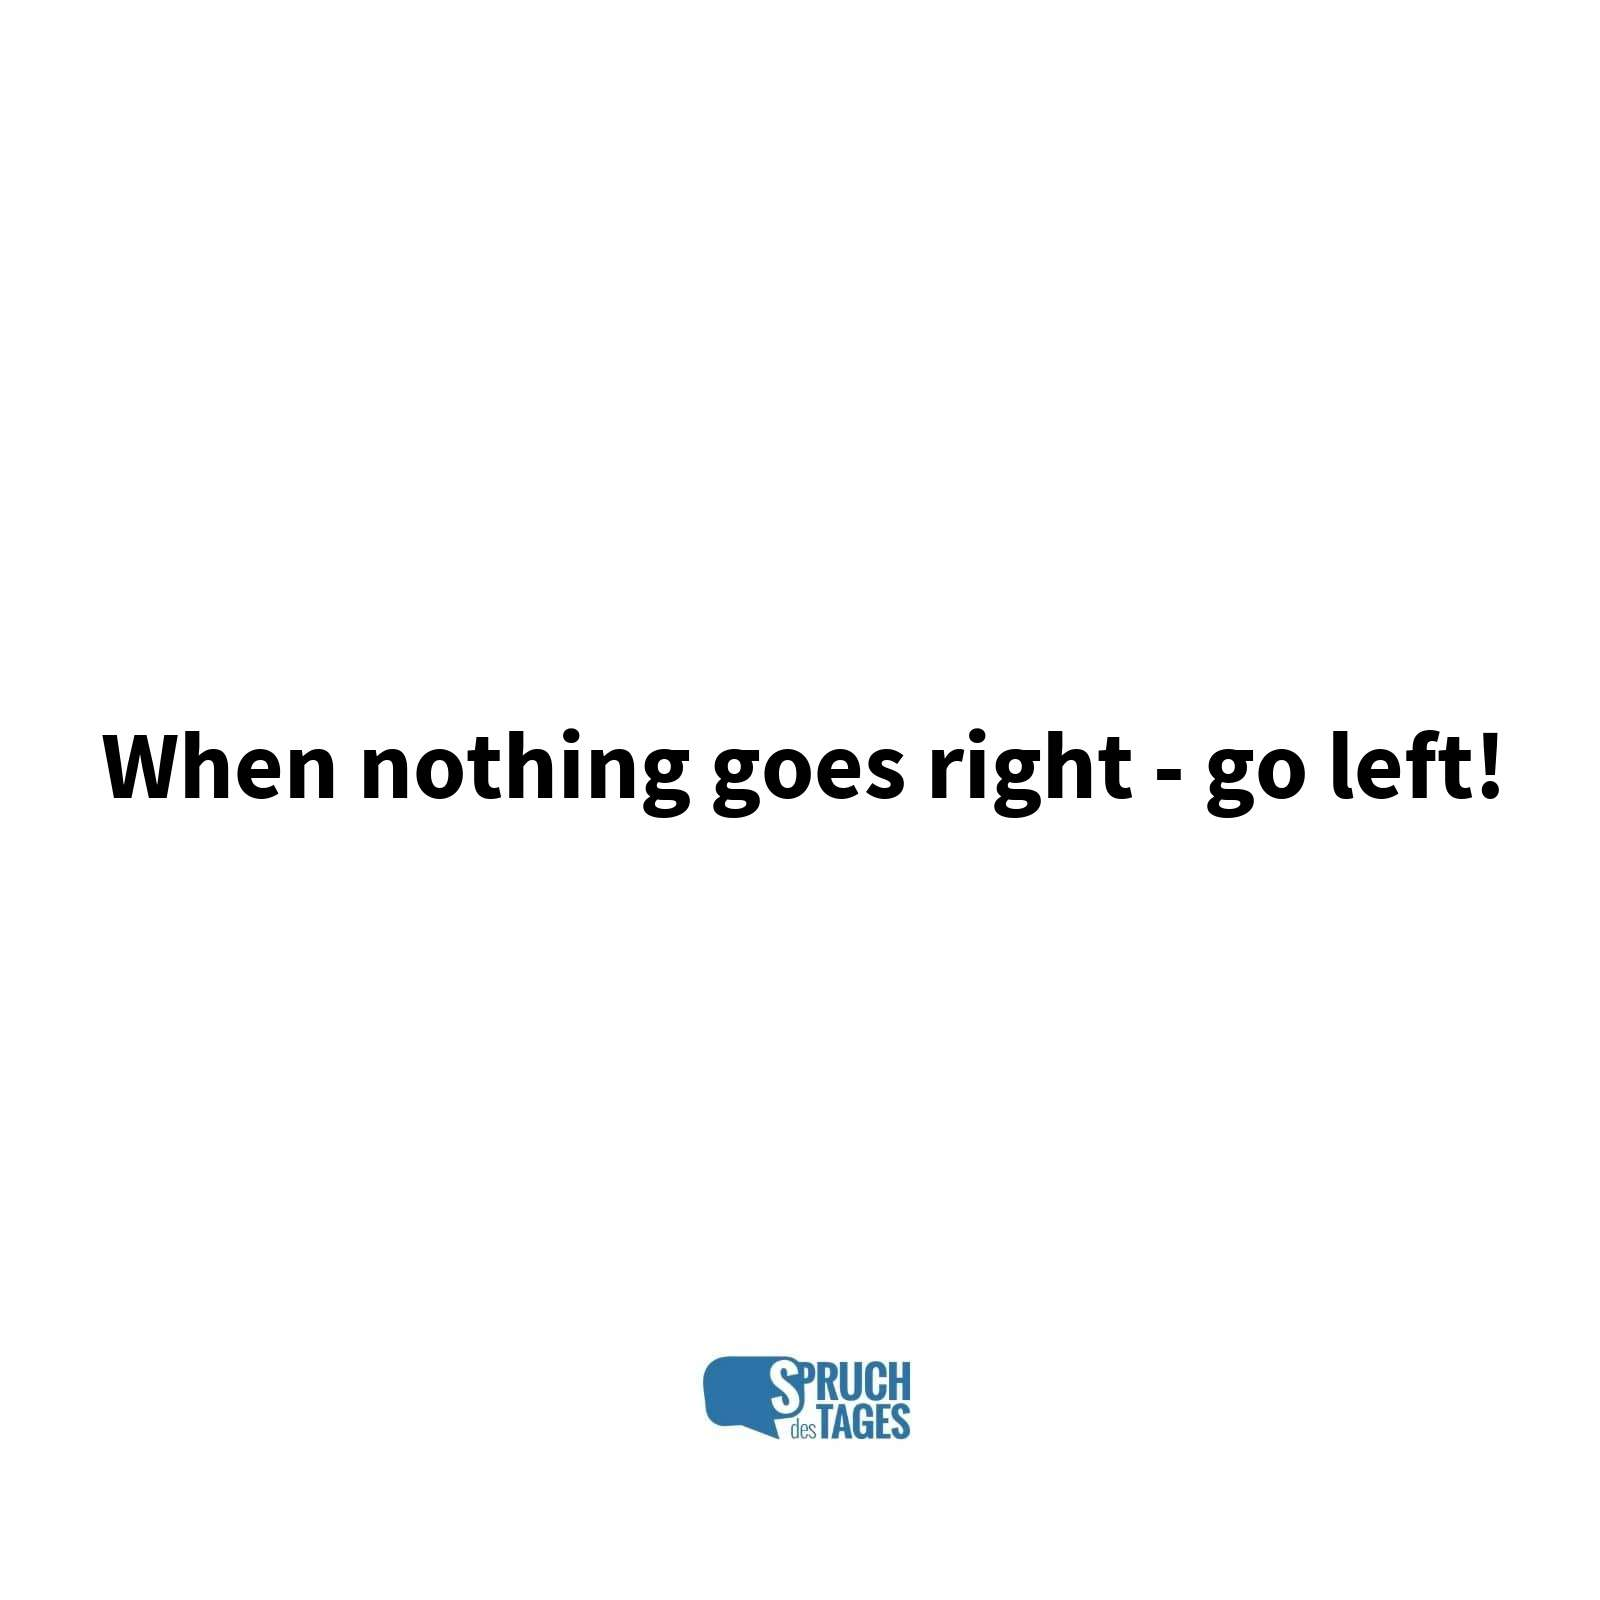 When nothing goes right - go left!